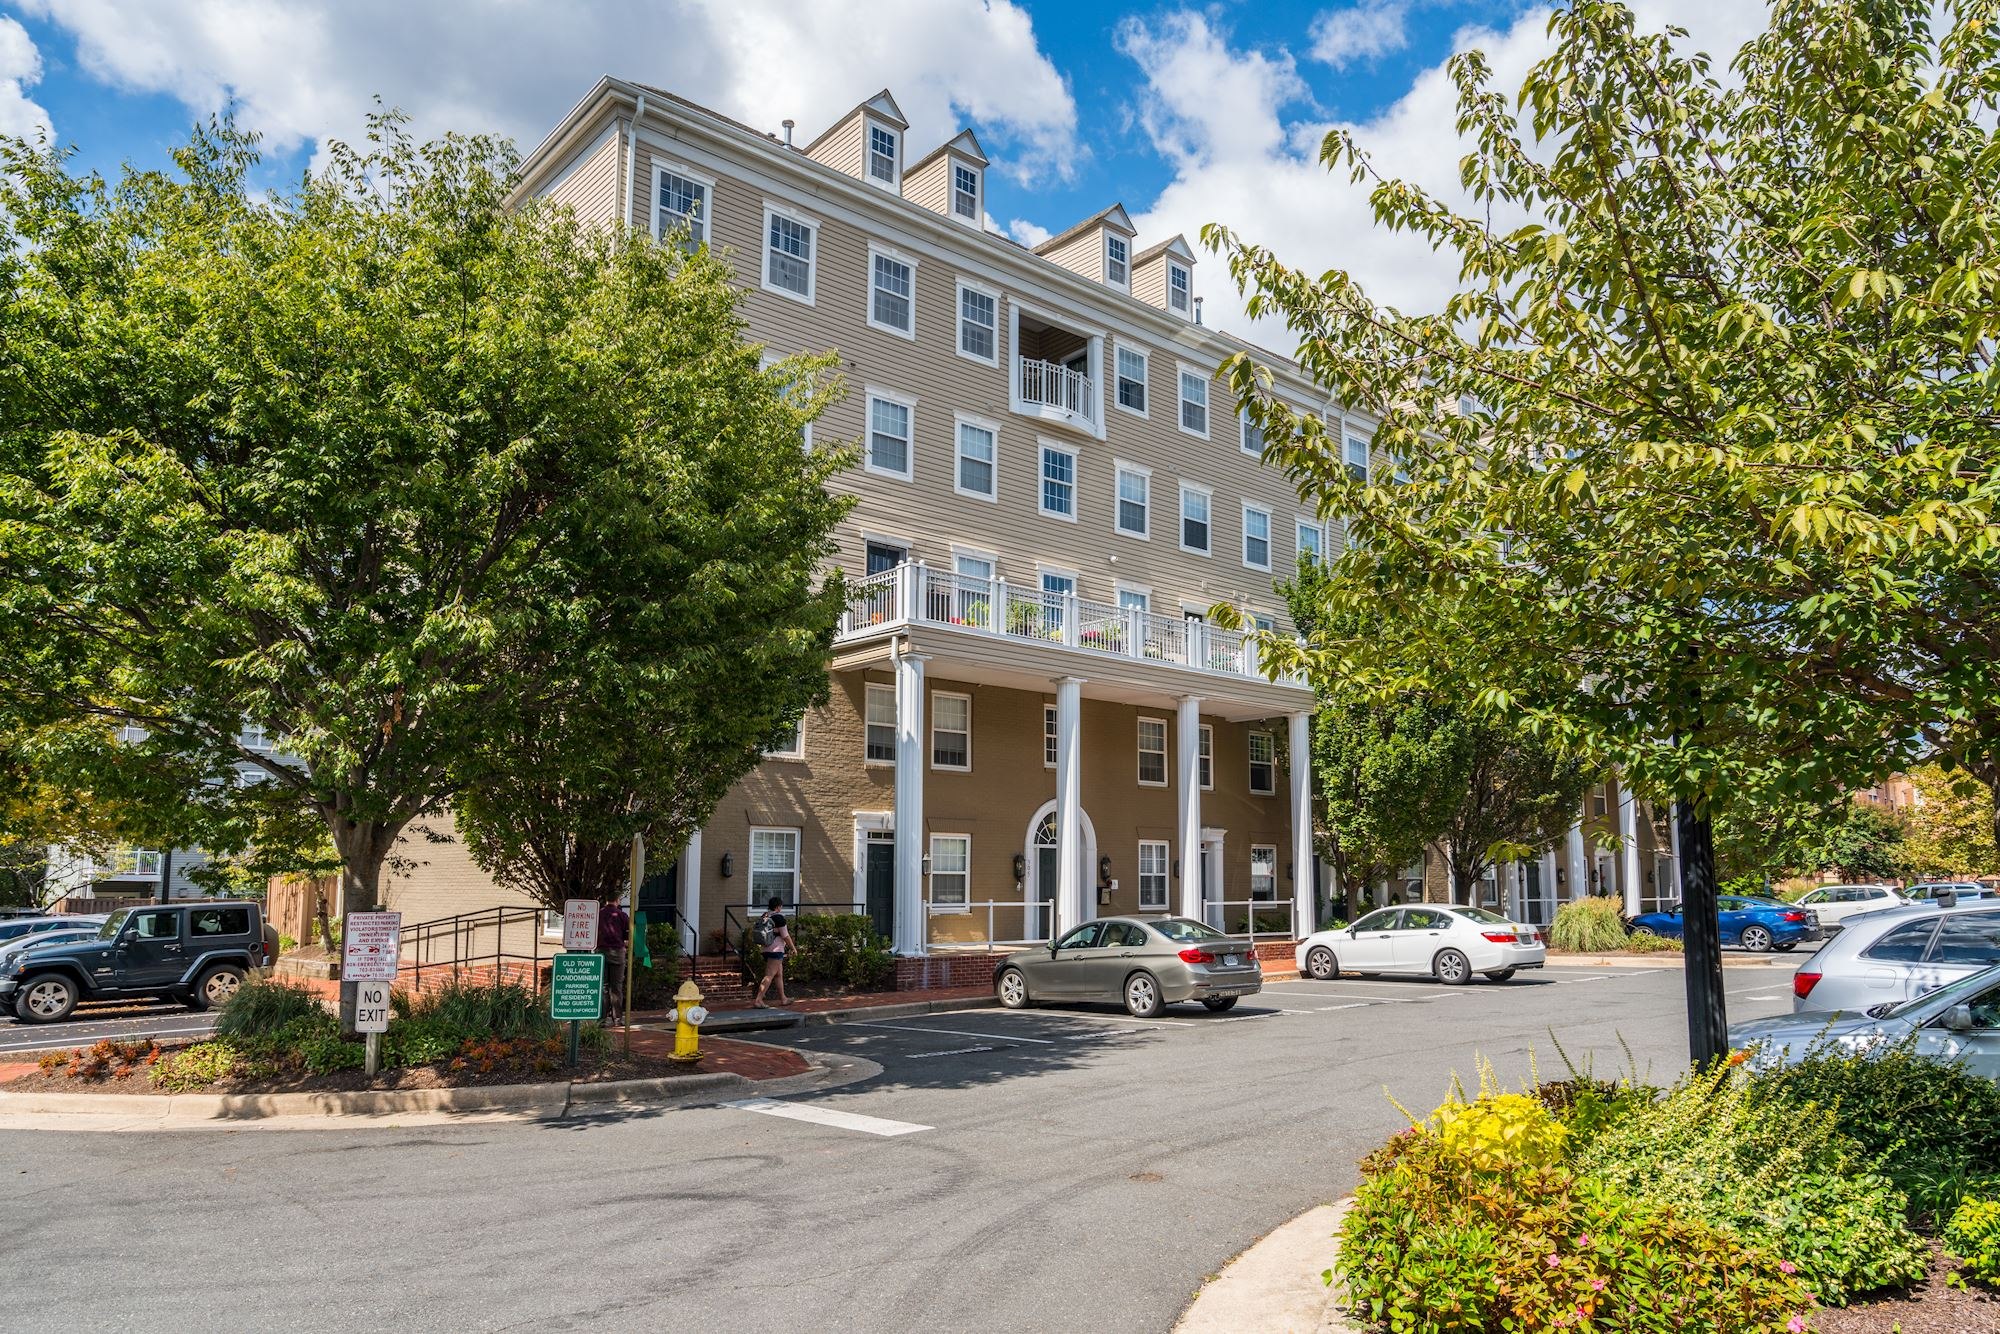 NEW LISTING: Turnkey 1 BD Condo Minutes From Old Town Alexandria, VA